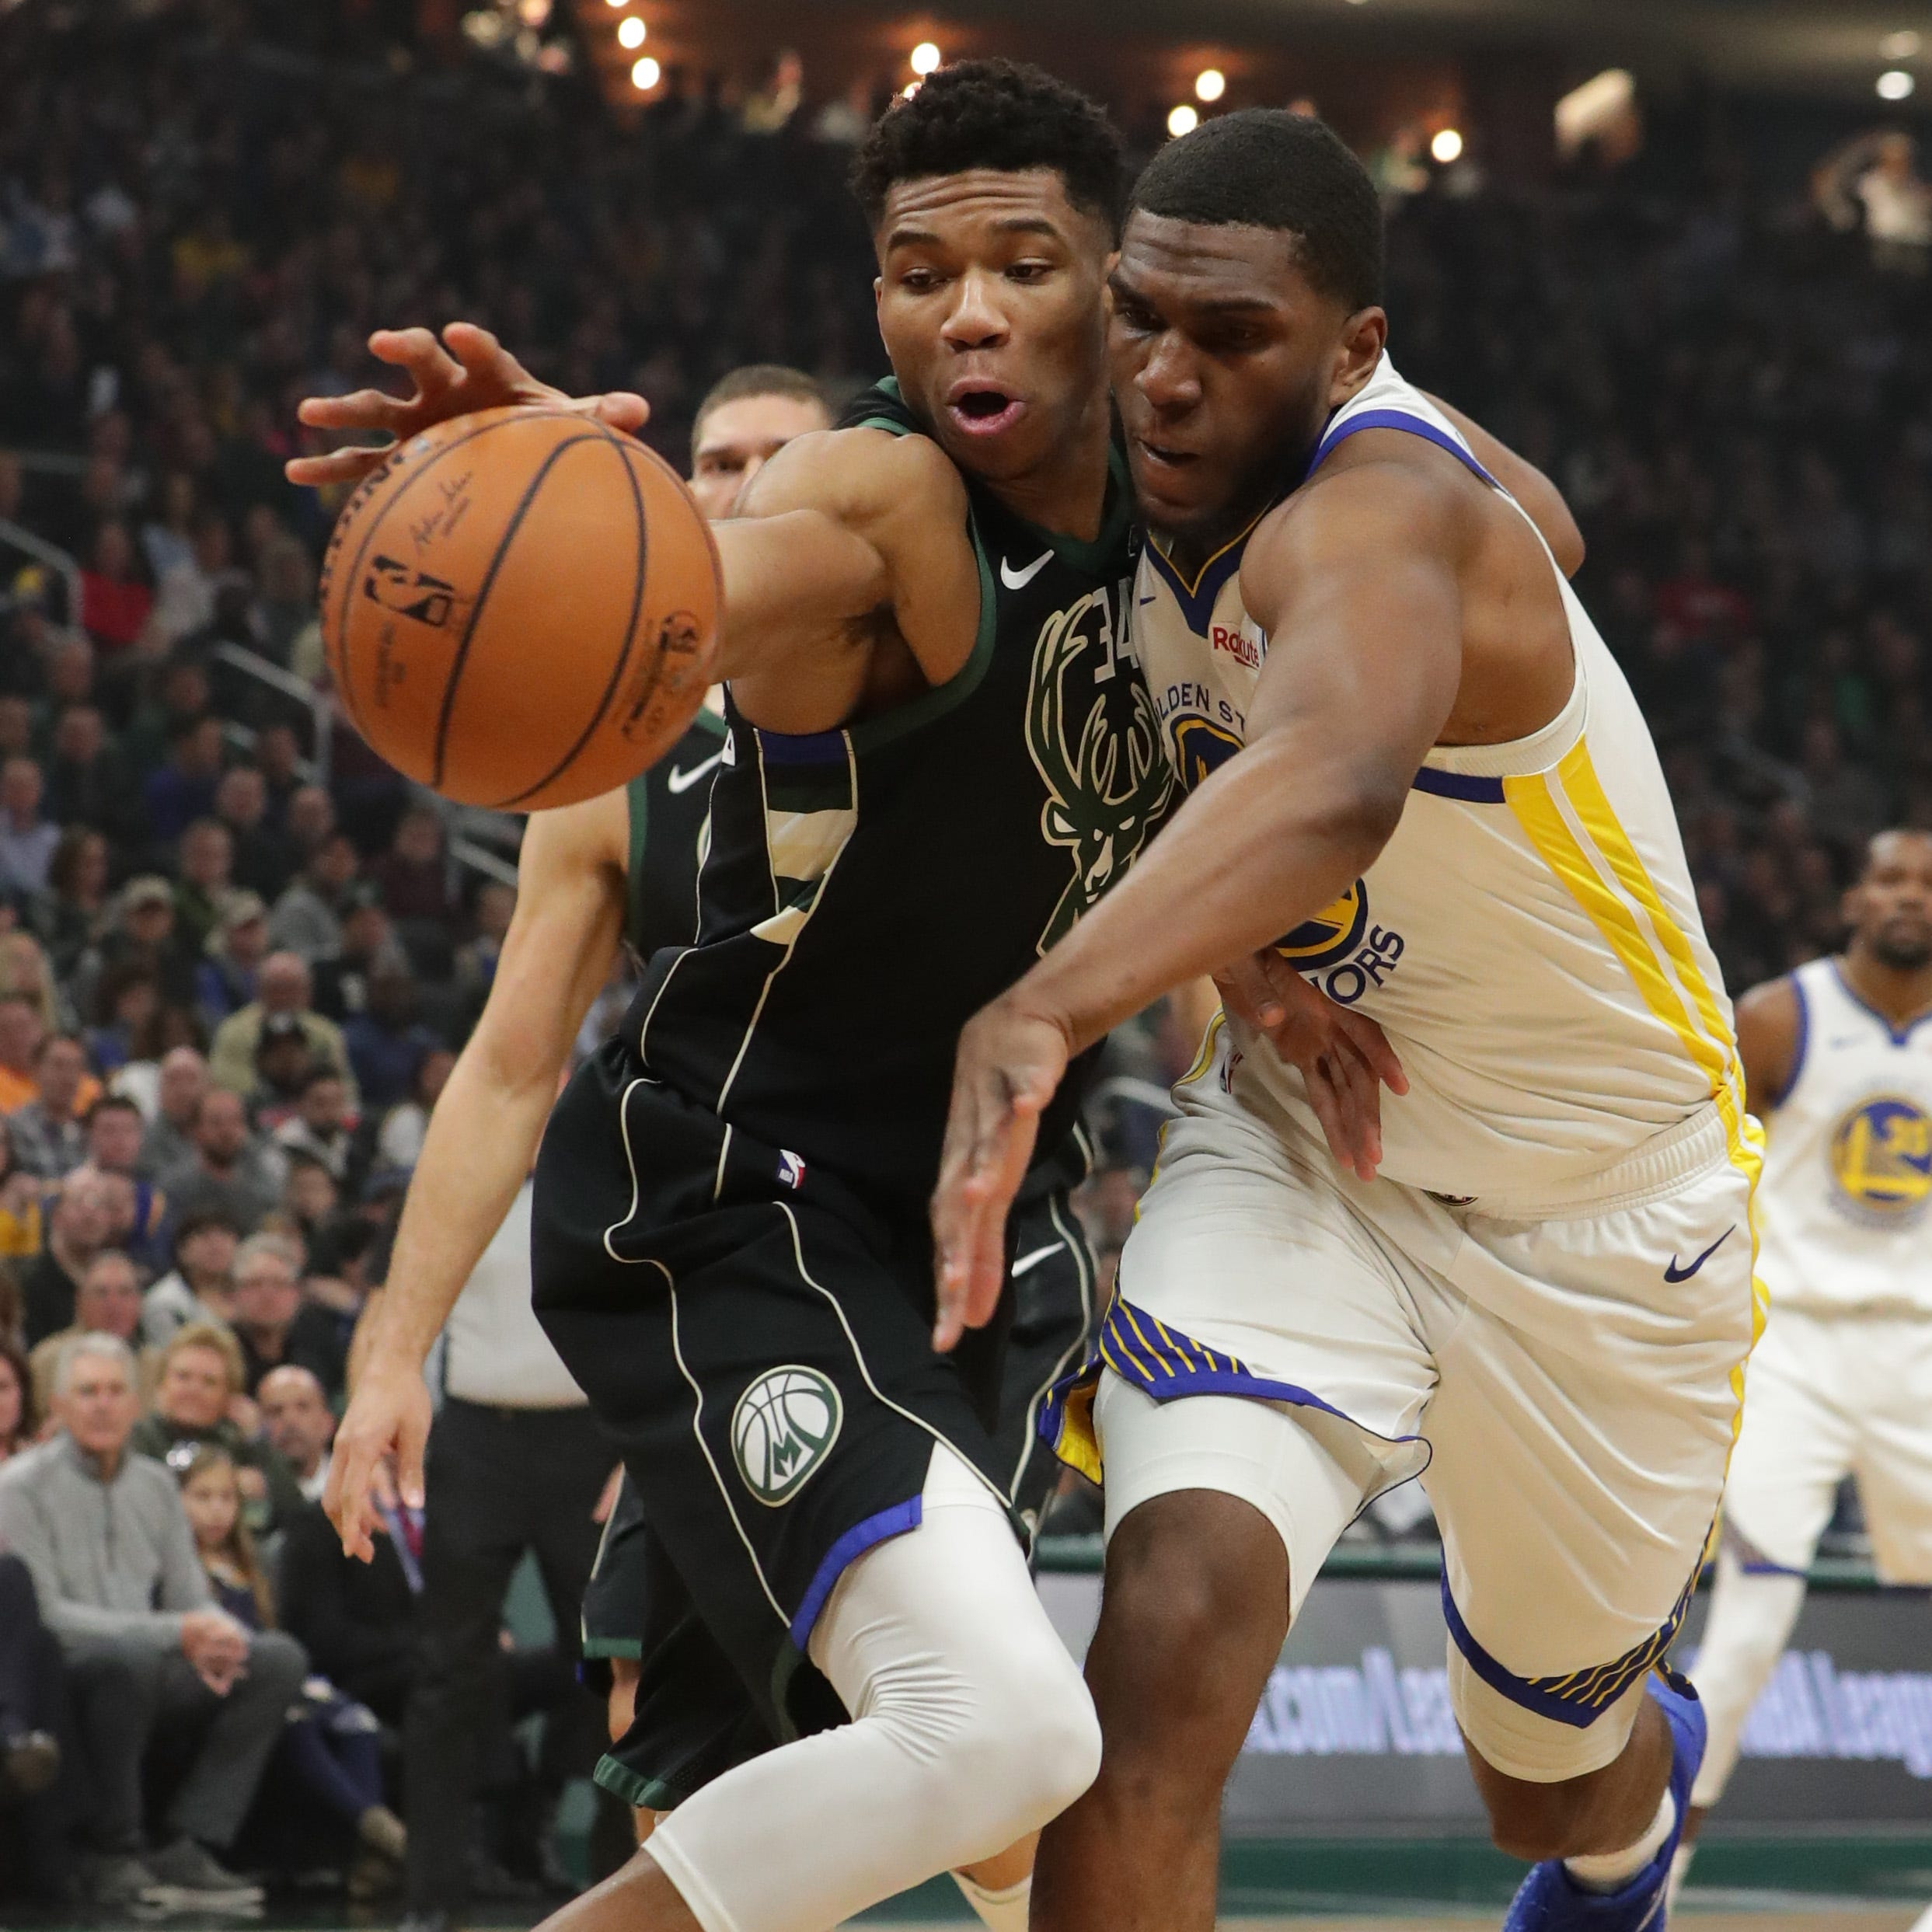 Warriors 105, Bucks 95: Throwing up enough bricks to build another arena